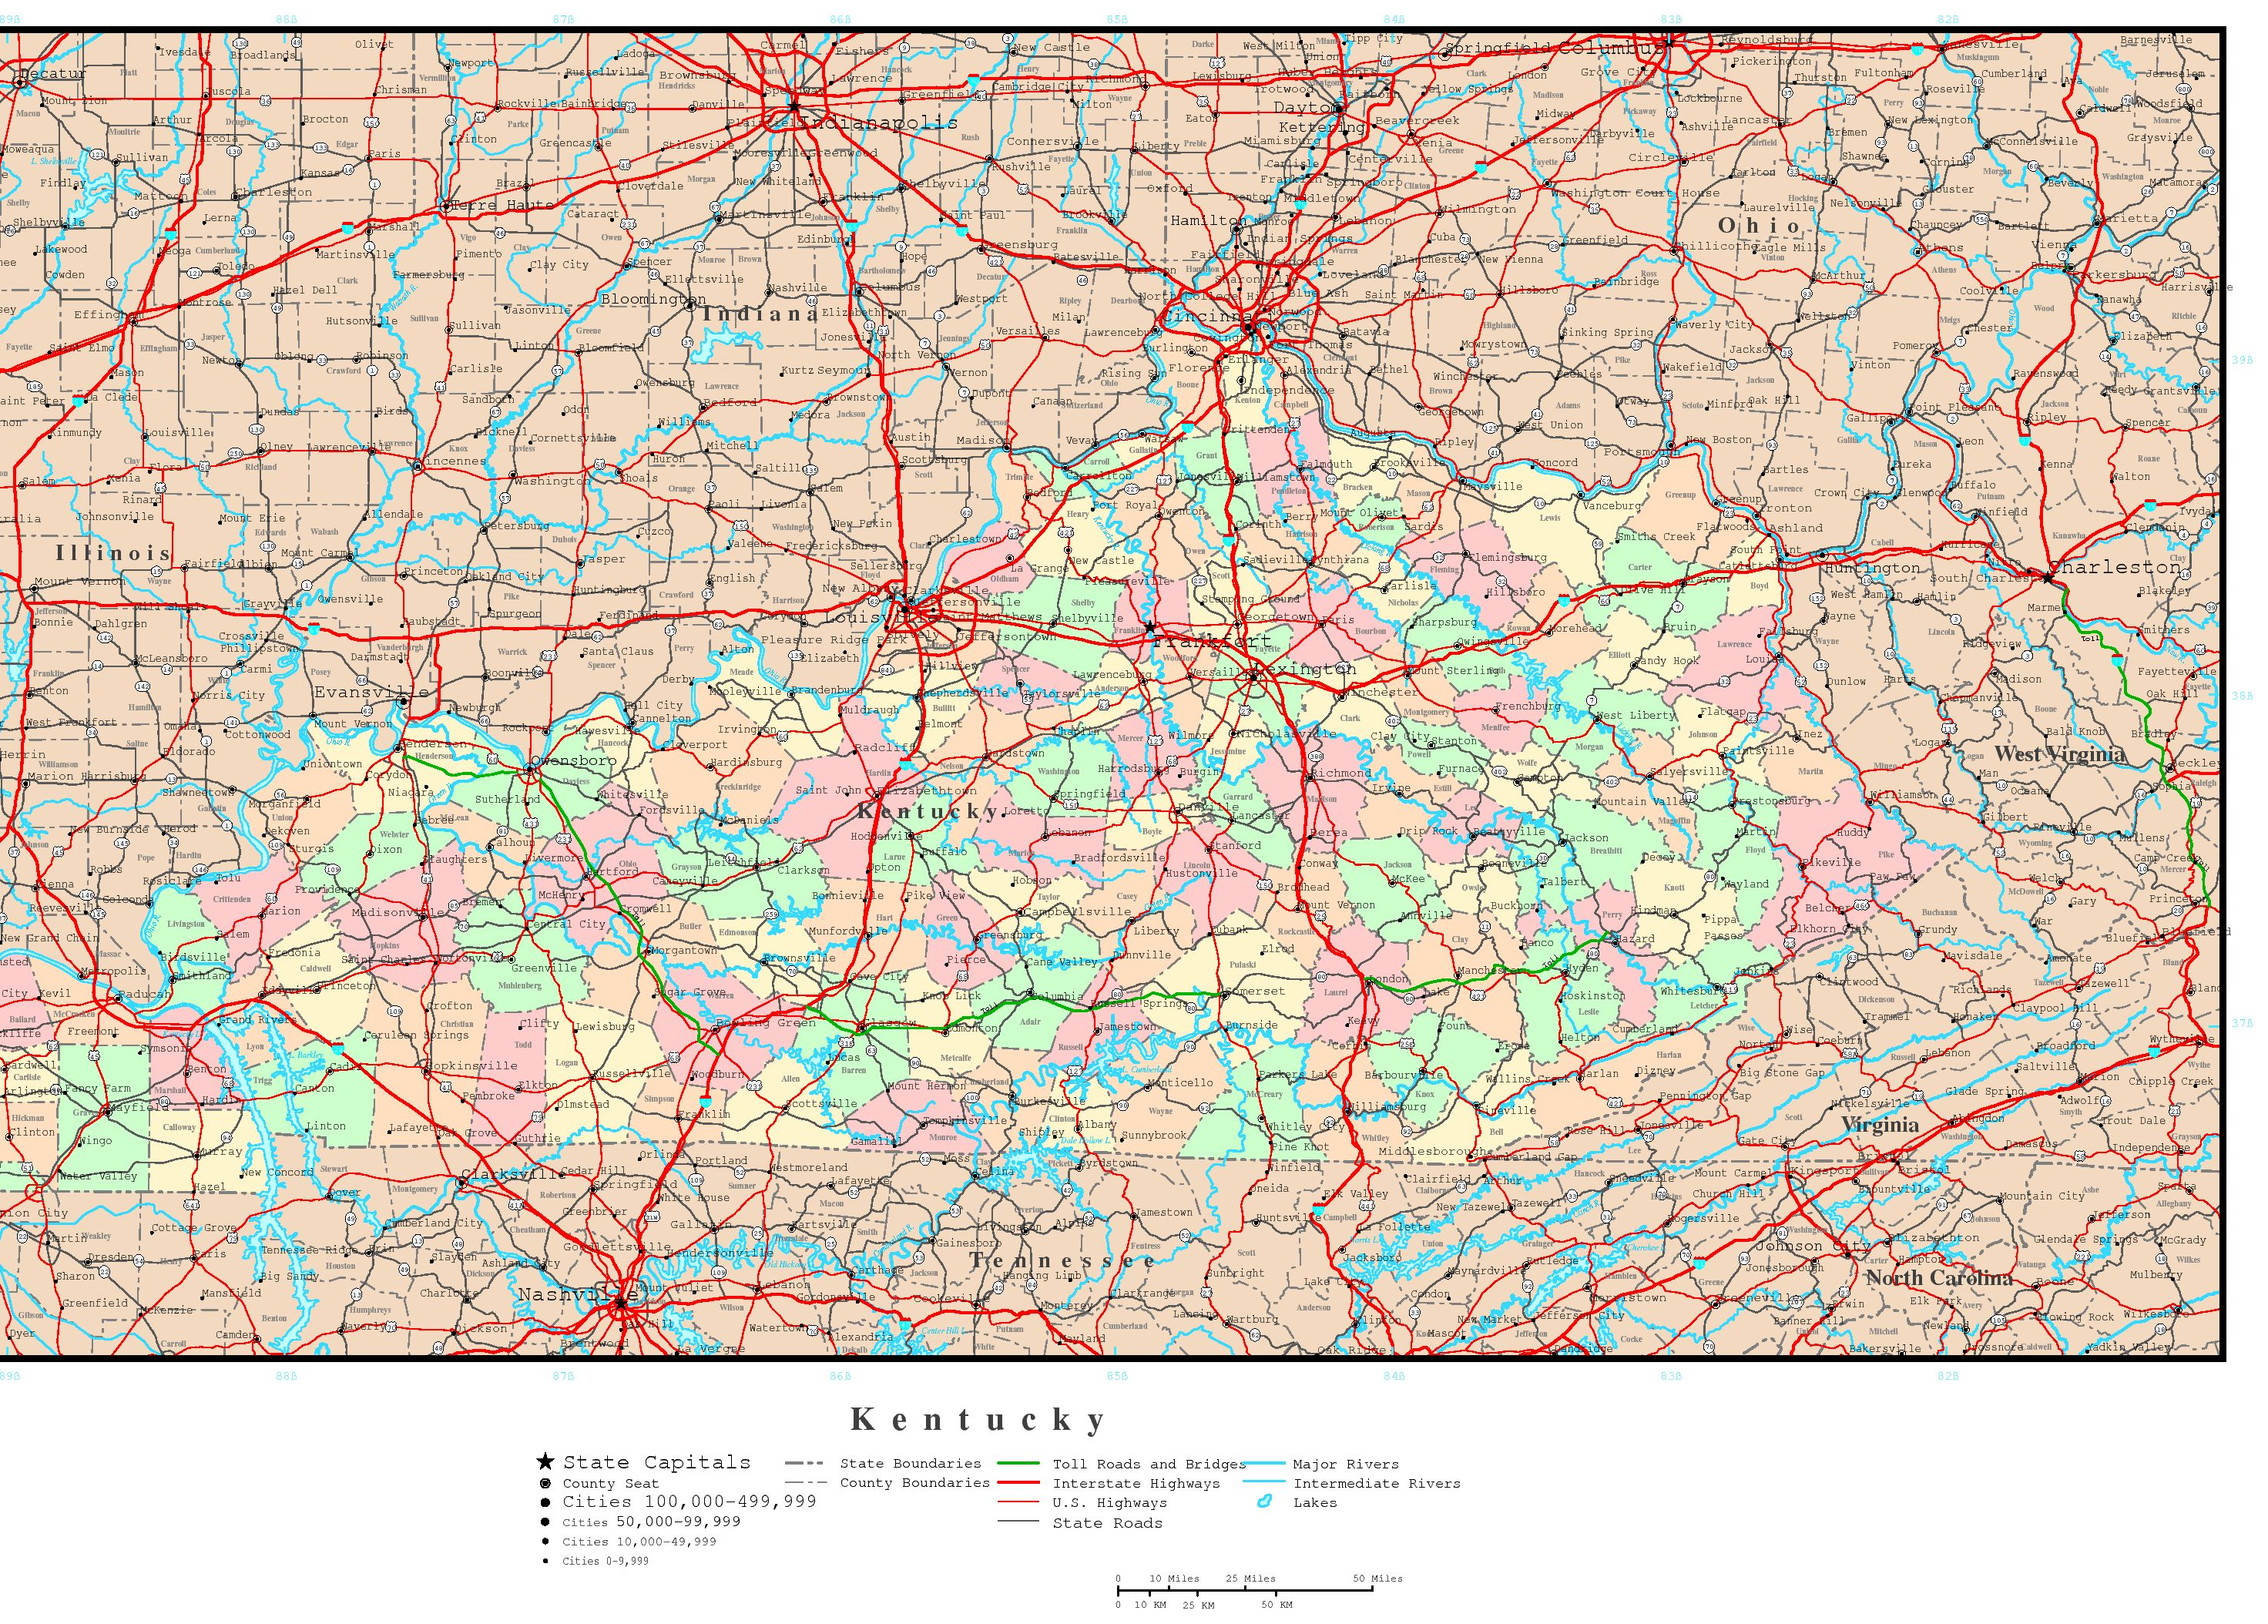 Kentucky Political Map - Road map of kentucky